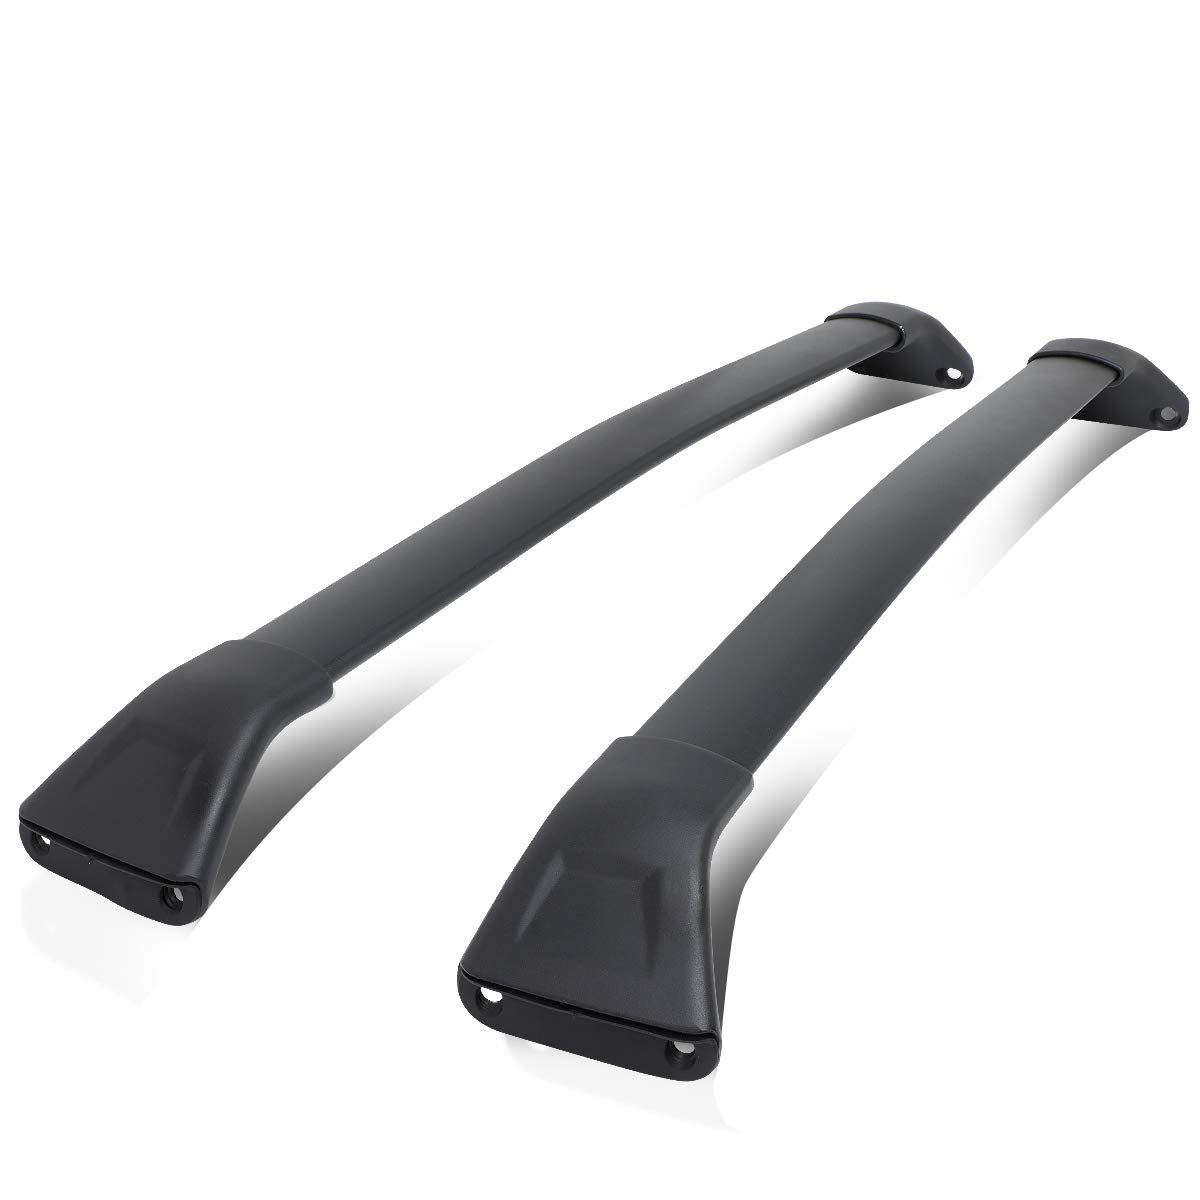 Pair Factory Style Aluminum Car Roof Rail Cross Bars Top Luggage/Cargo Carrier for 17-18 Mazda CX-5 CX5 Auto Dynasty